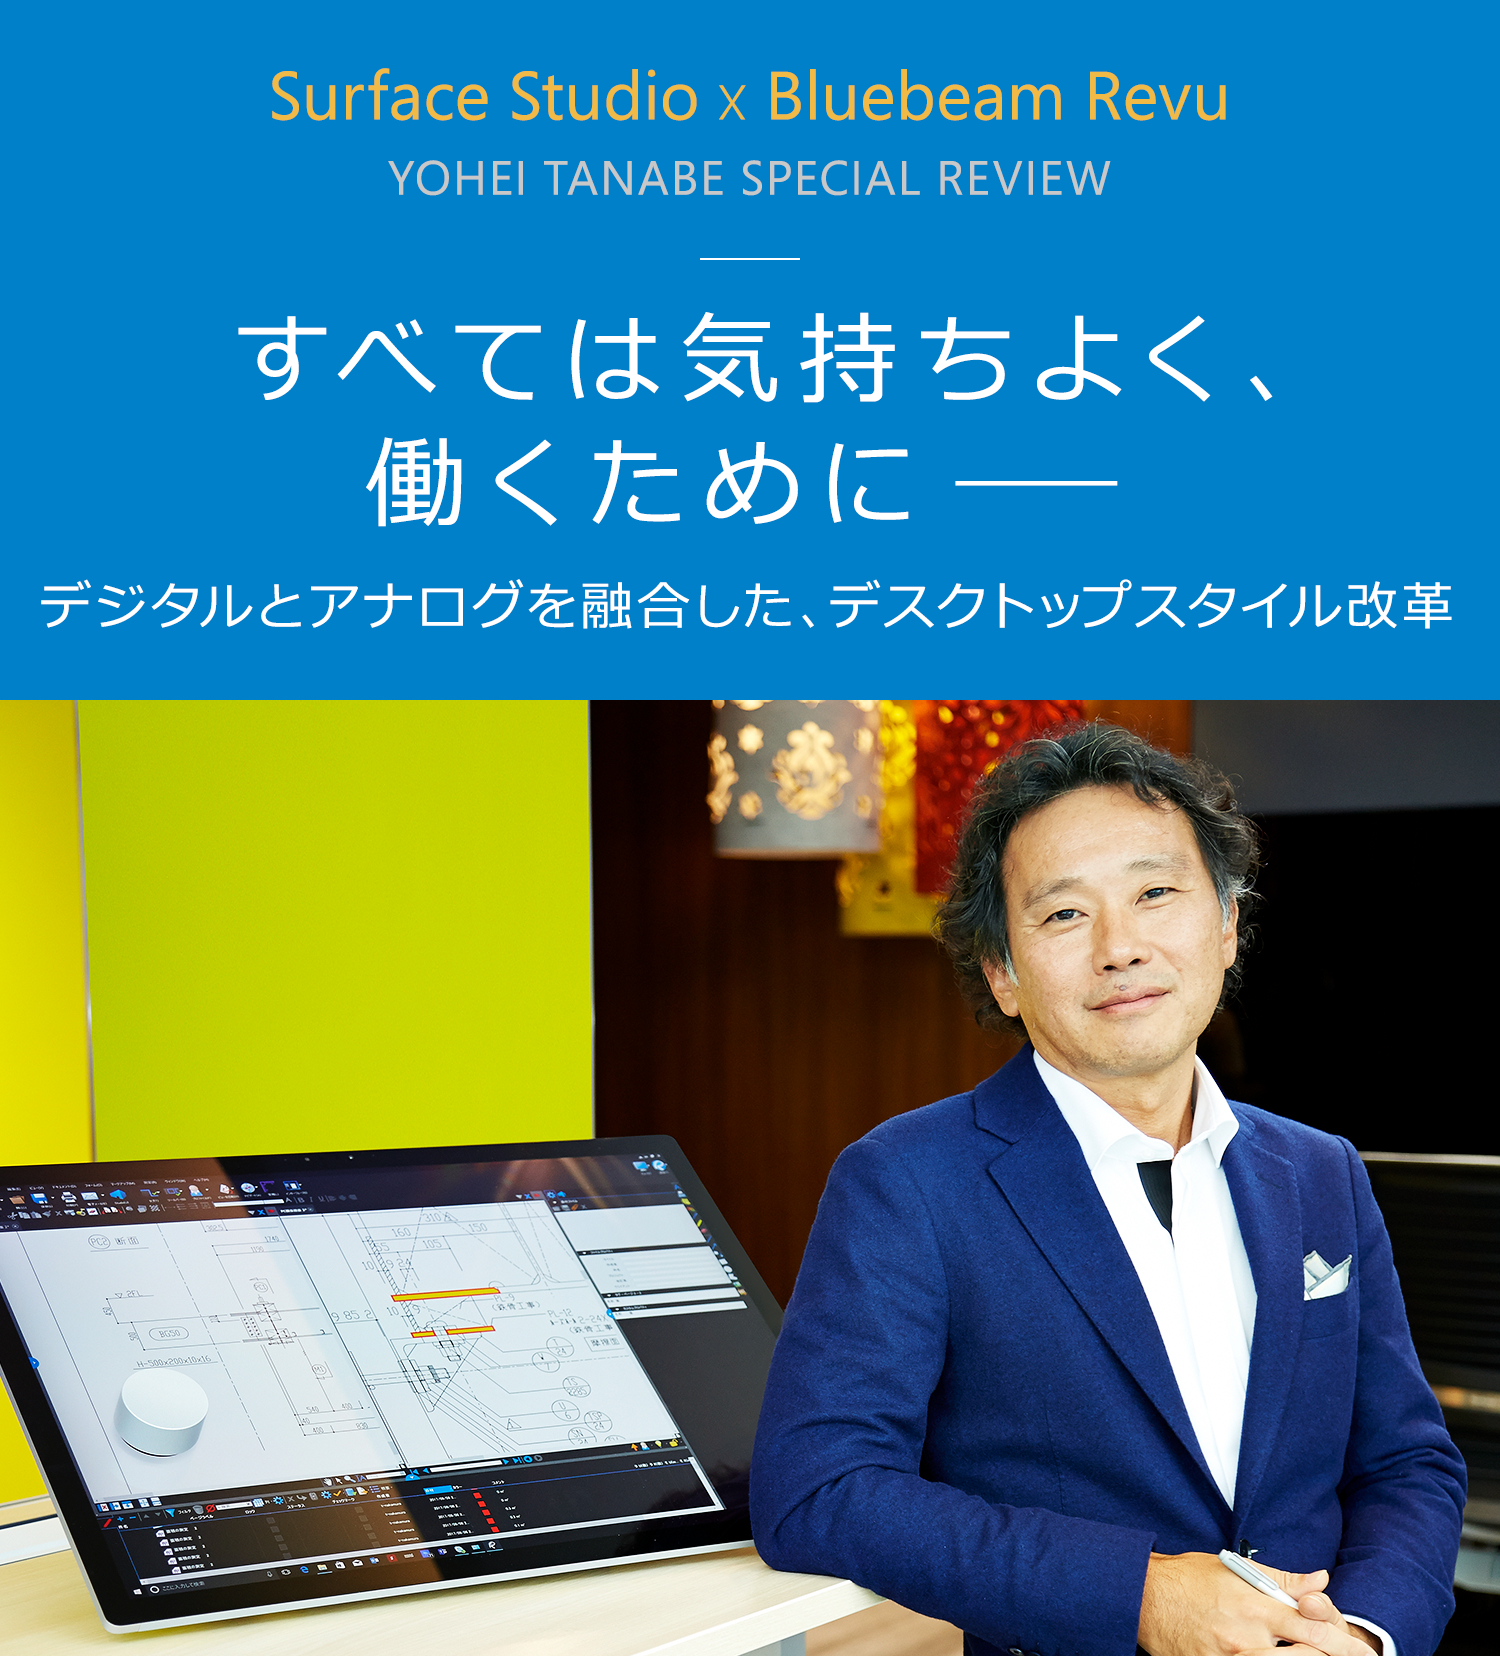 Surface Studio × Bluebeam Revu / YOHEI TANABE SPECIAL REVIEW ―すべては気持ちよく、働くために―